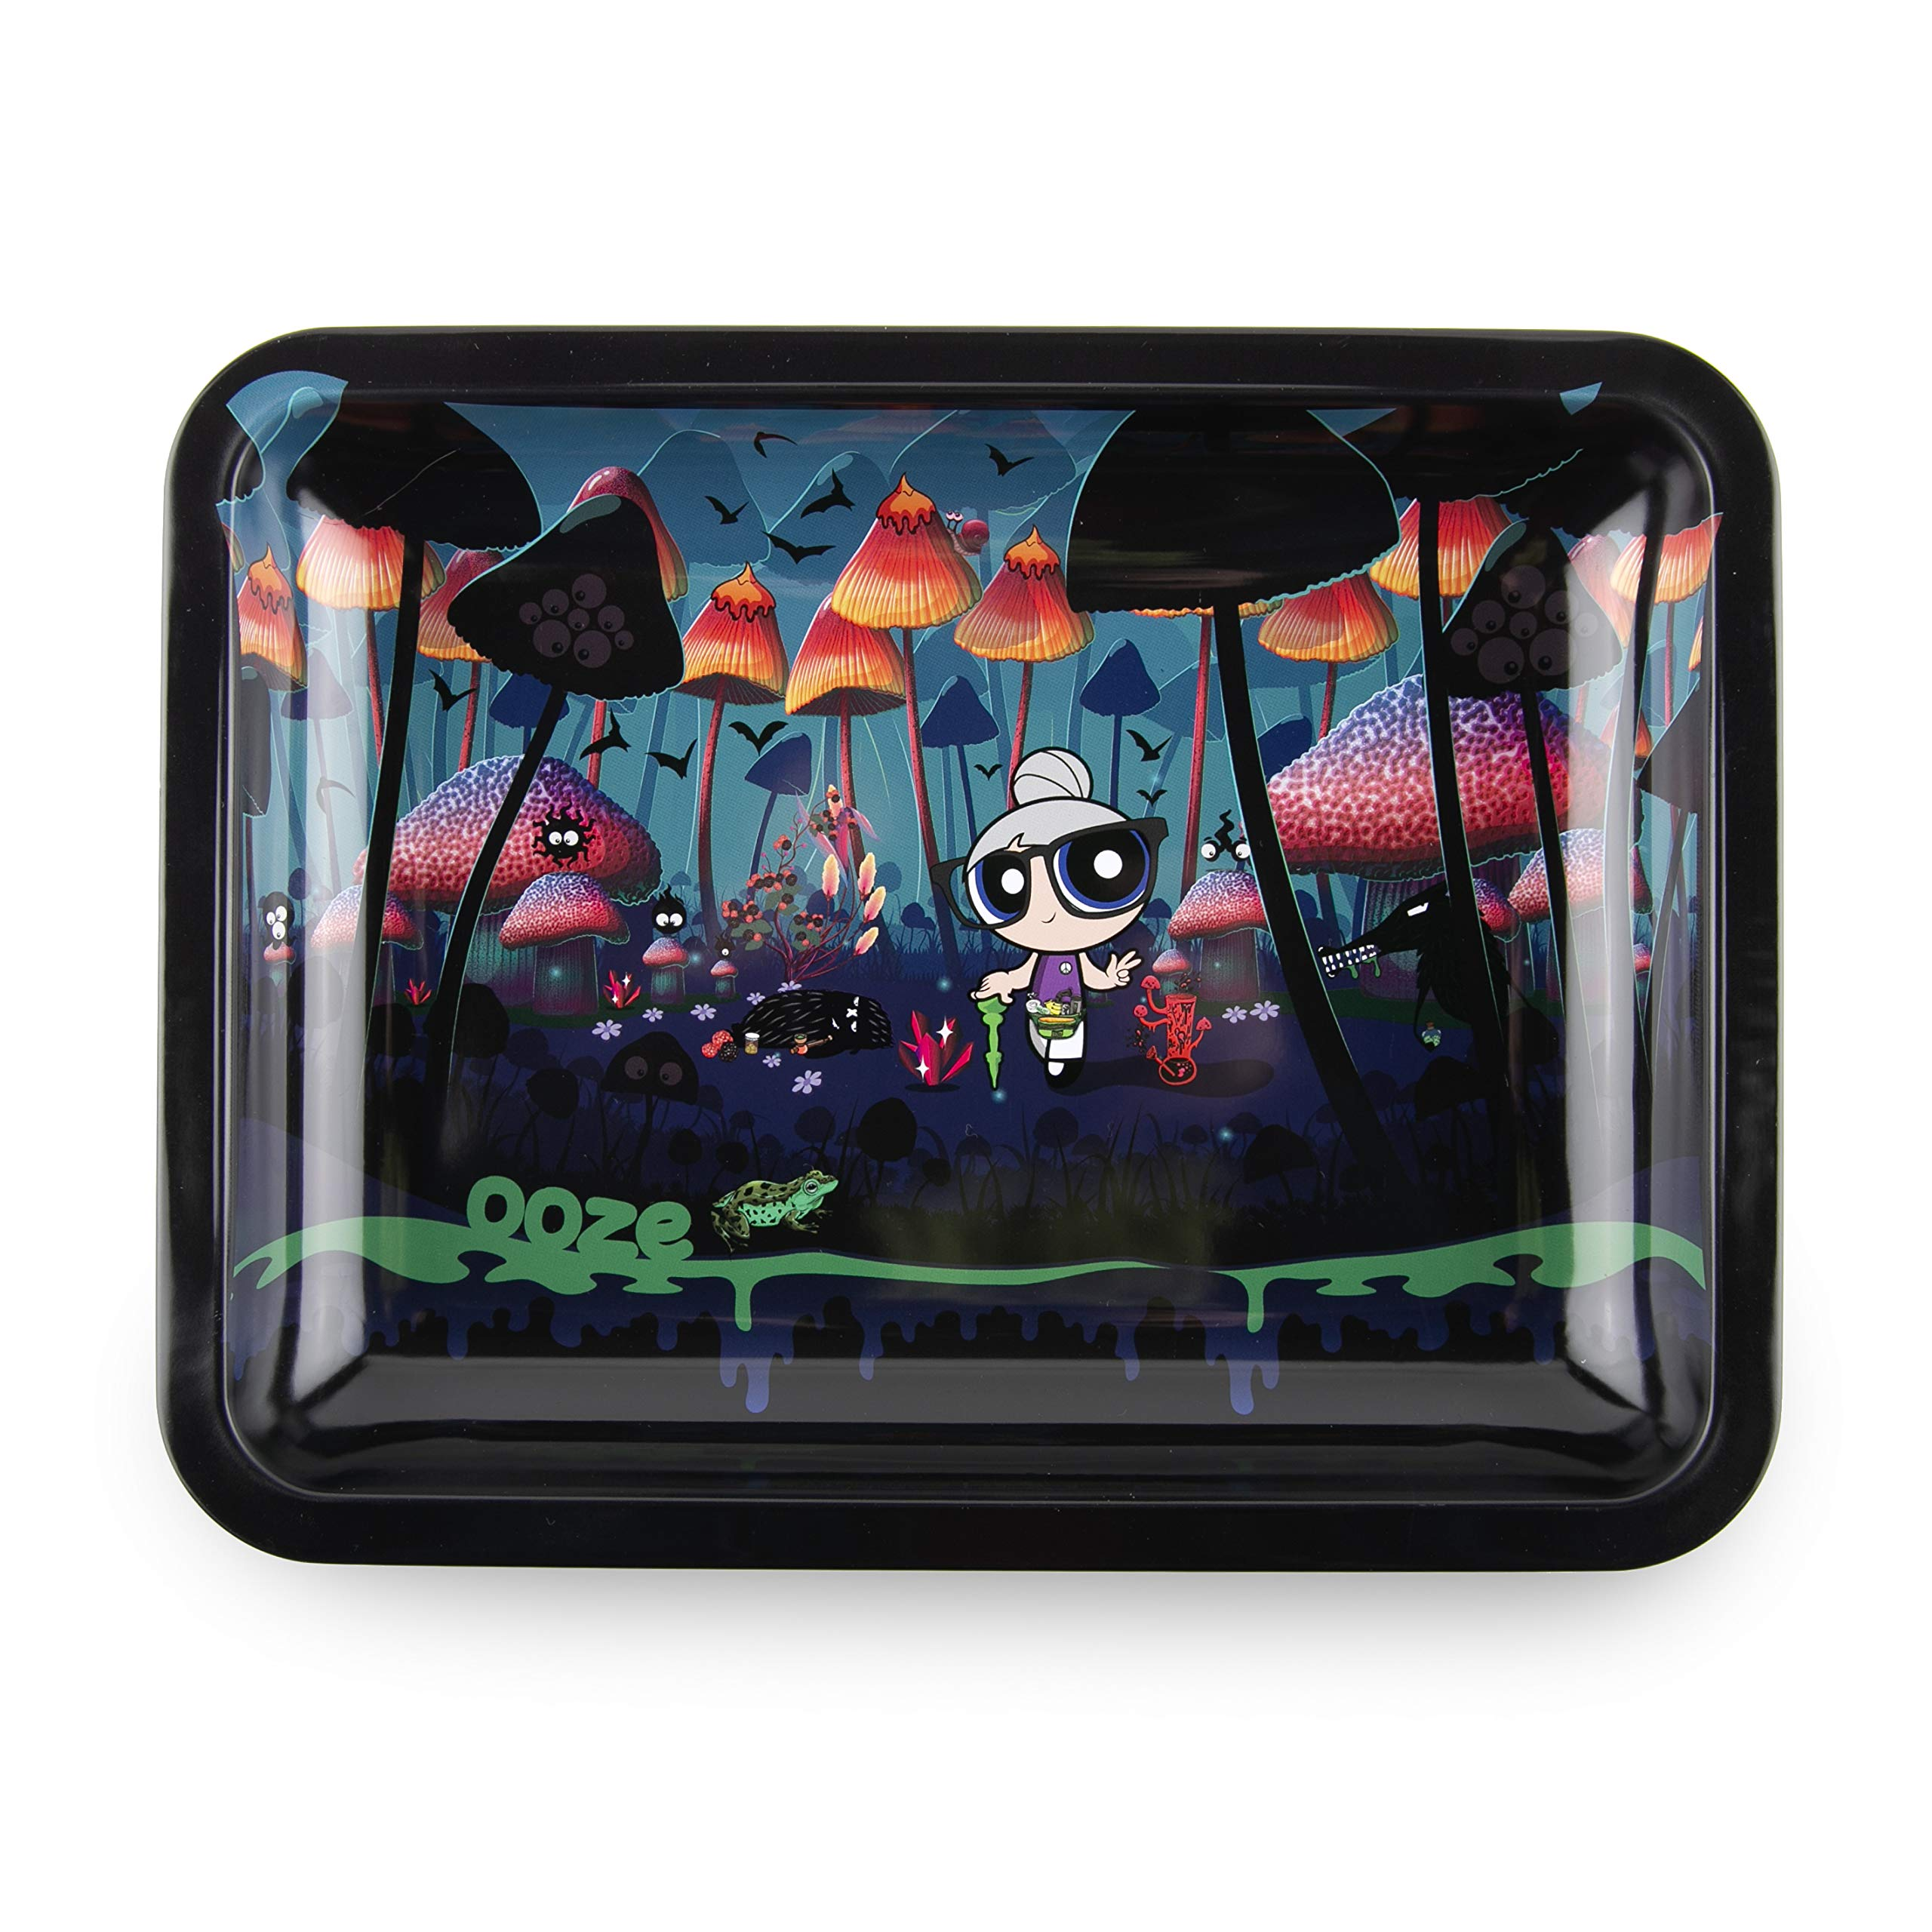 Ooze - Metal Rolling Tray - Grannyland - (10''x7.75'') by Ooze Life